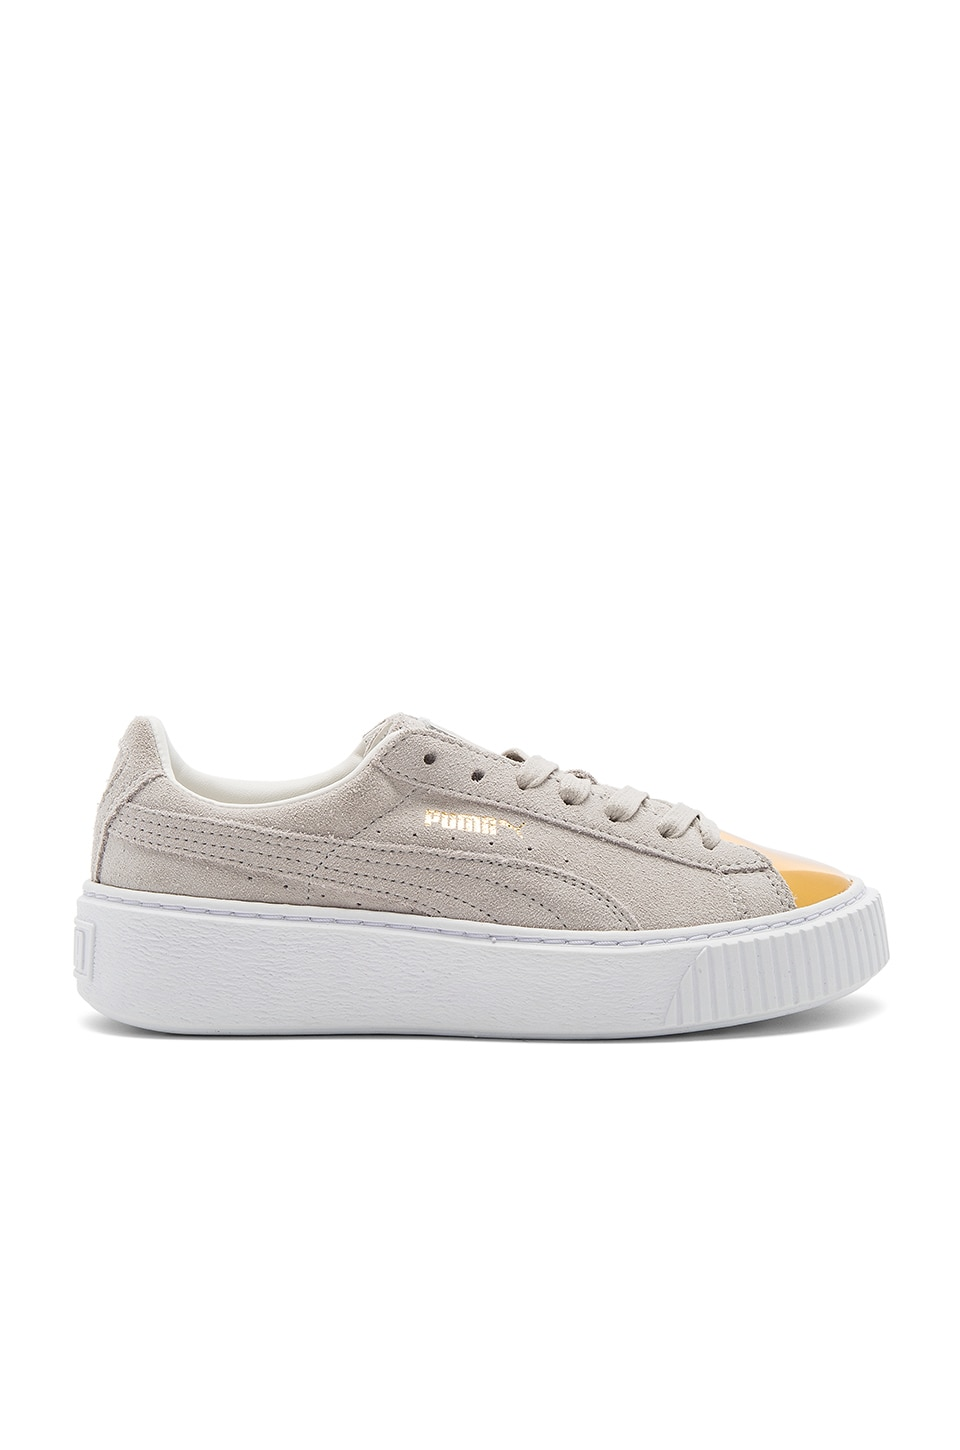 Puma Suede Platform Sneaker in Gold & Star White